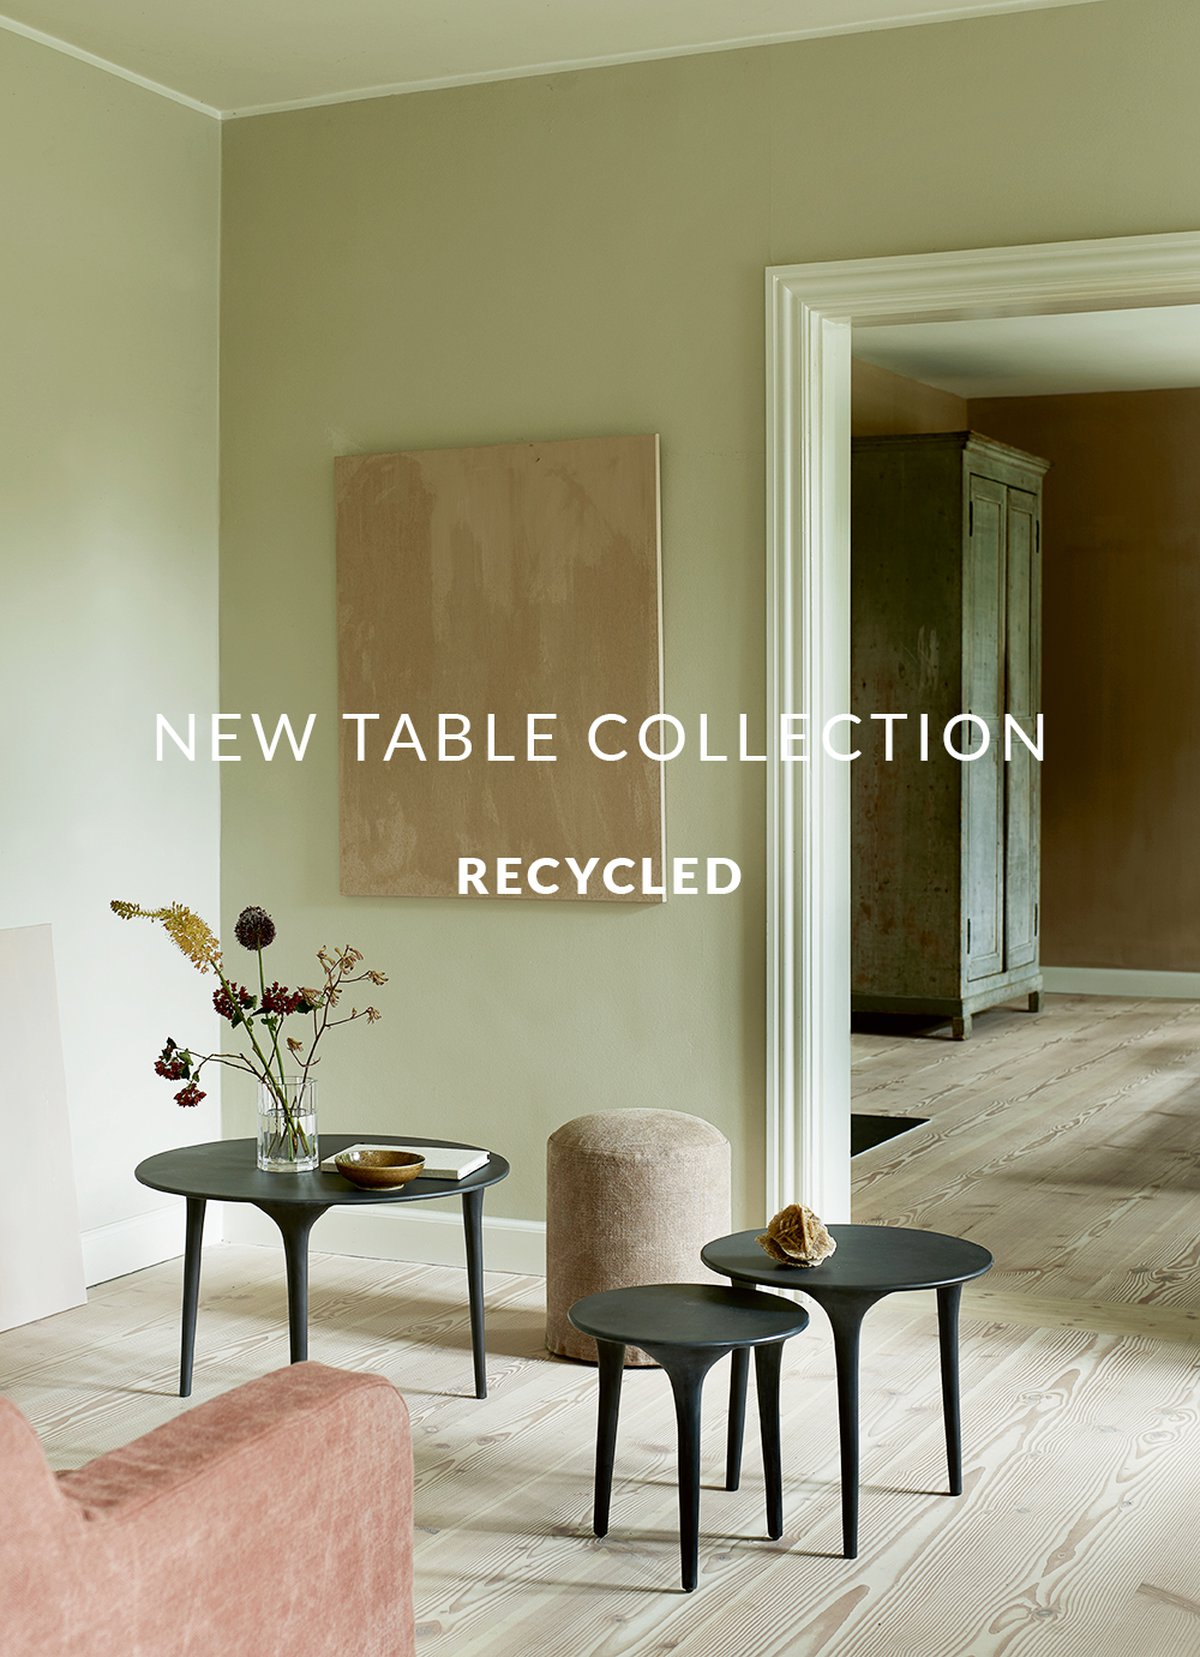 New Table Collection